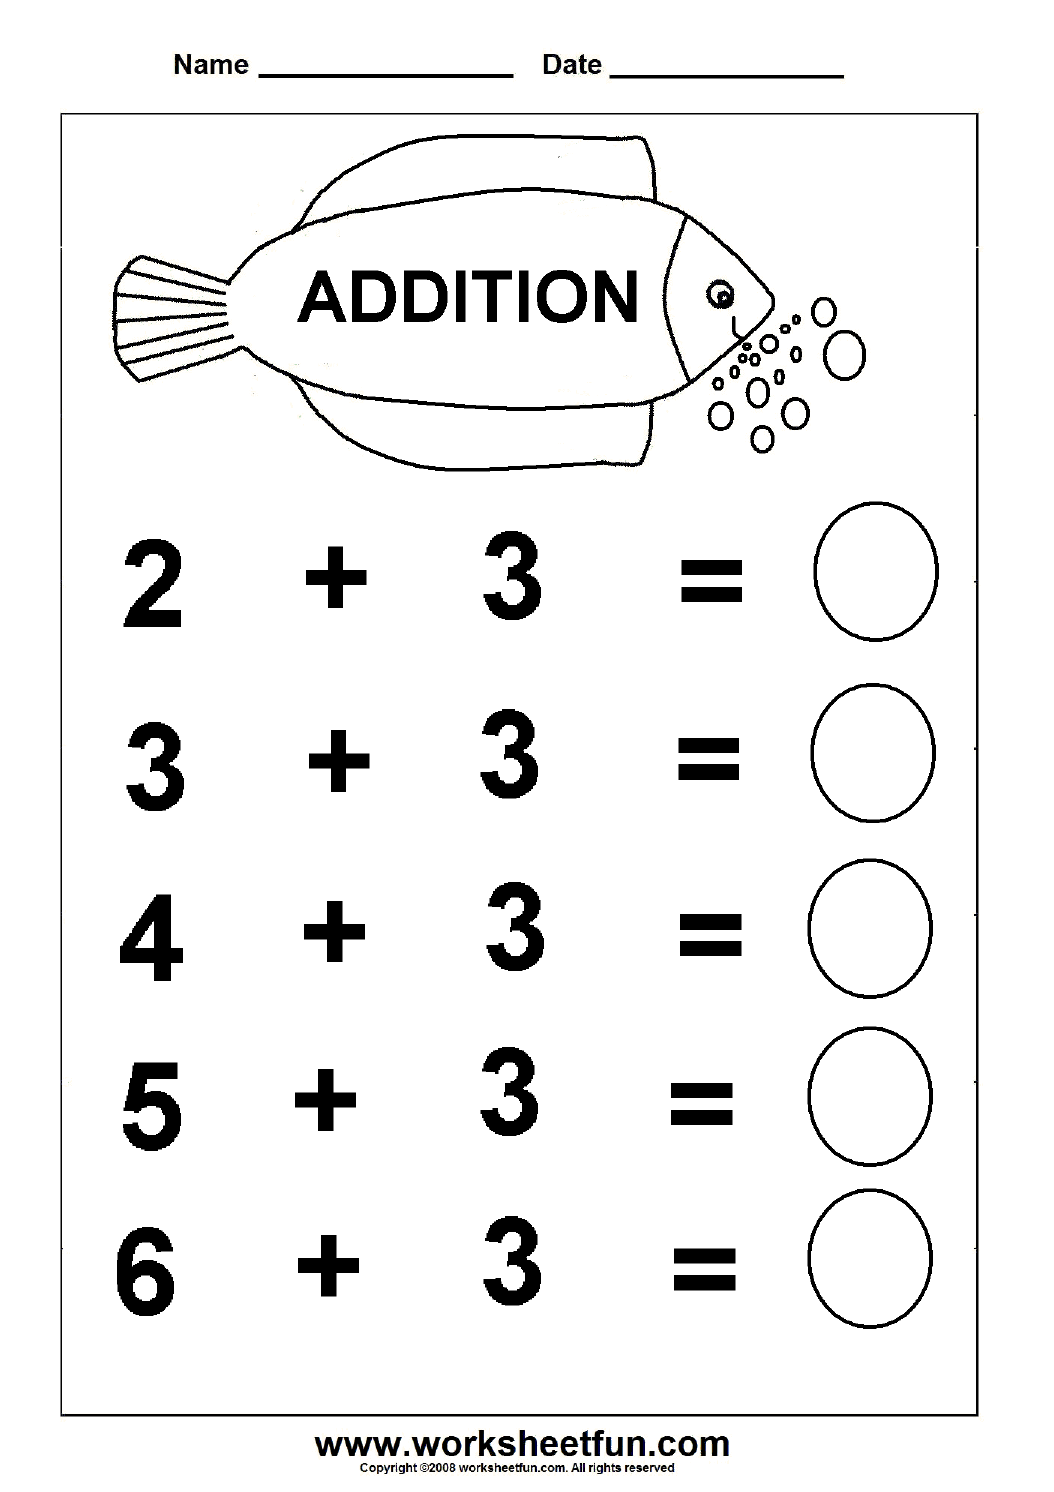 Free Worksheet Free Printable Simple Addition Worksheets addition basic facts free printable worksheets beginner 6 kindergarten worksheets